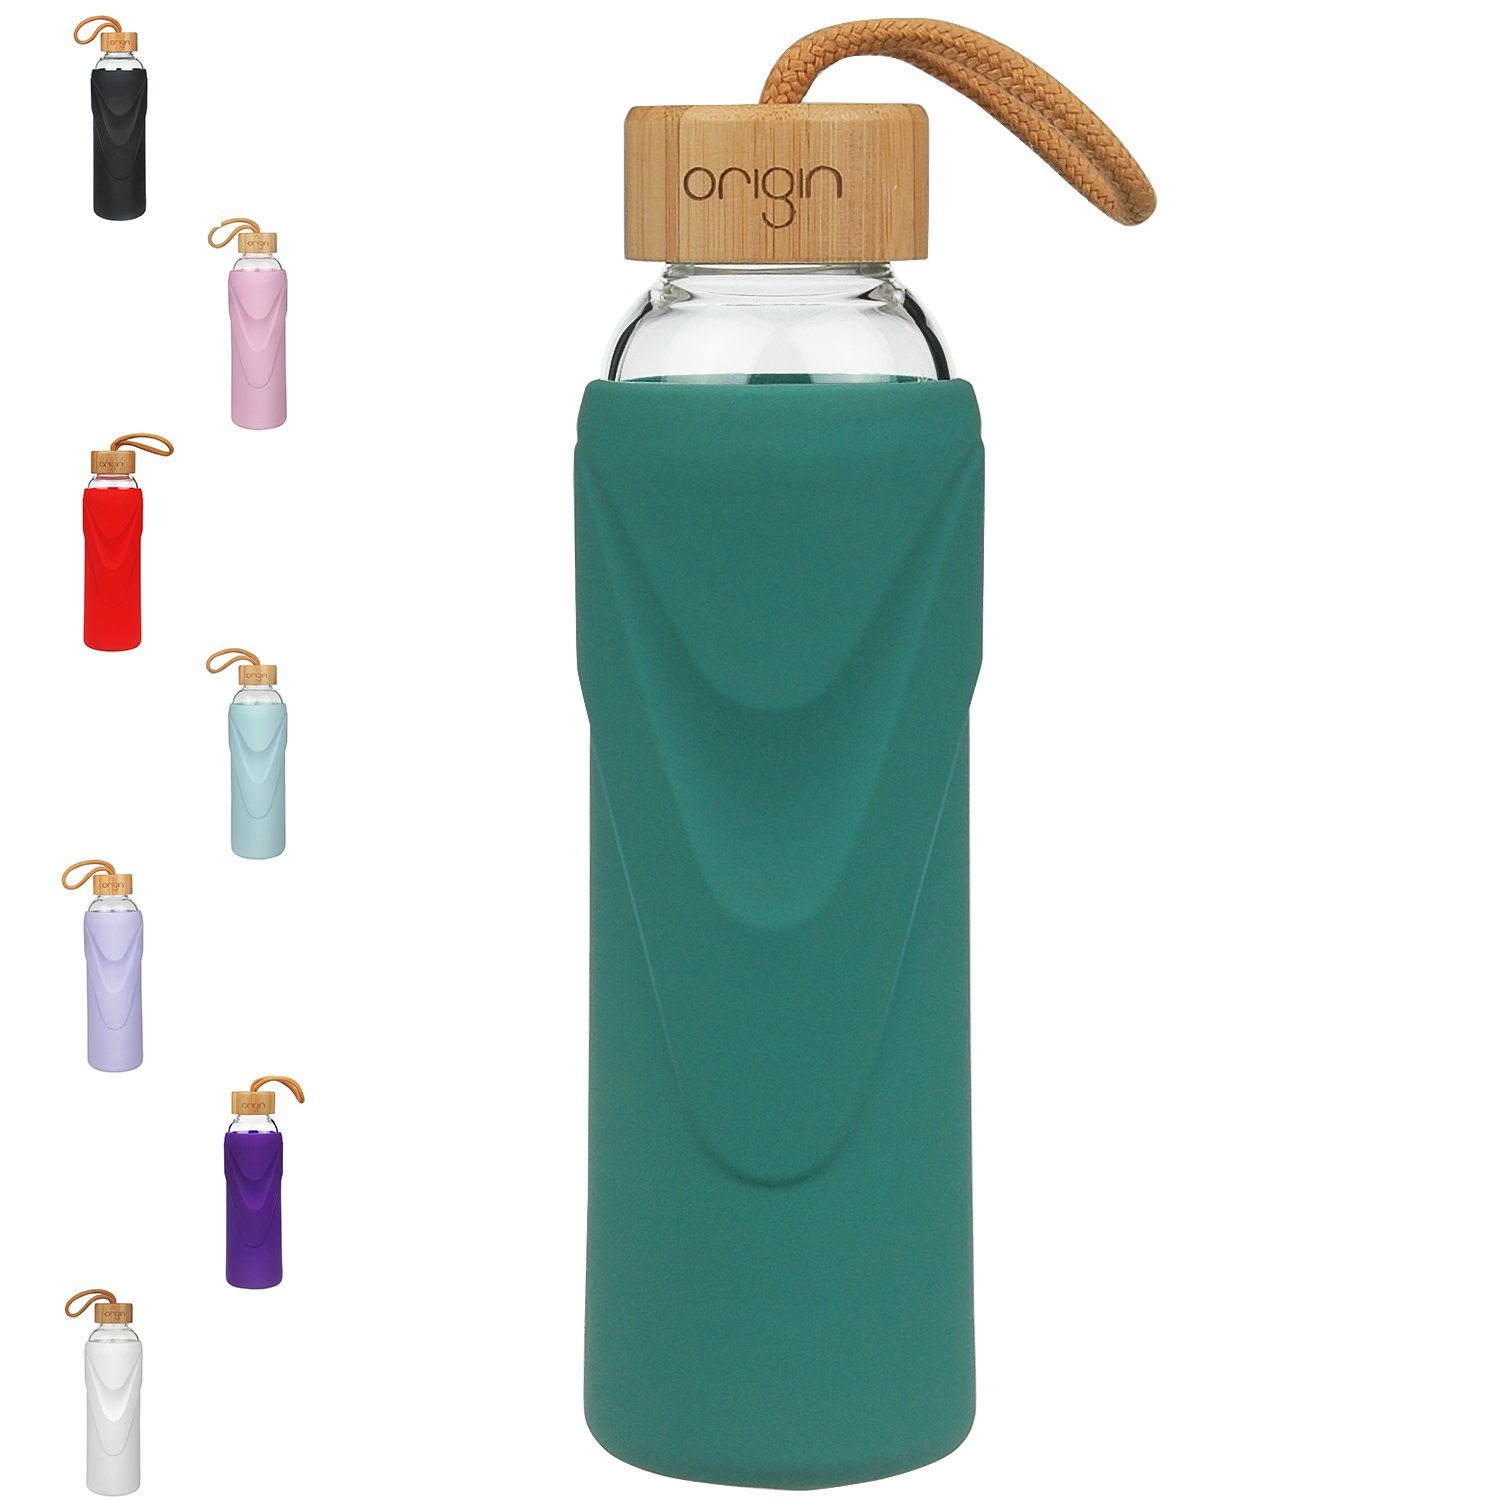 ORIGIN - Best BPA-Free Glass Water Bottle With Protective Silicone Sleeve and Bamboo Lid - Dishwasher Safe – 14 Ounce (Seaside Green)